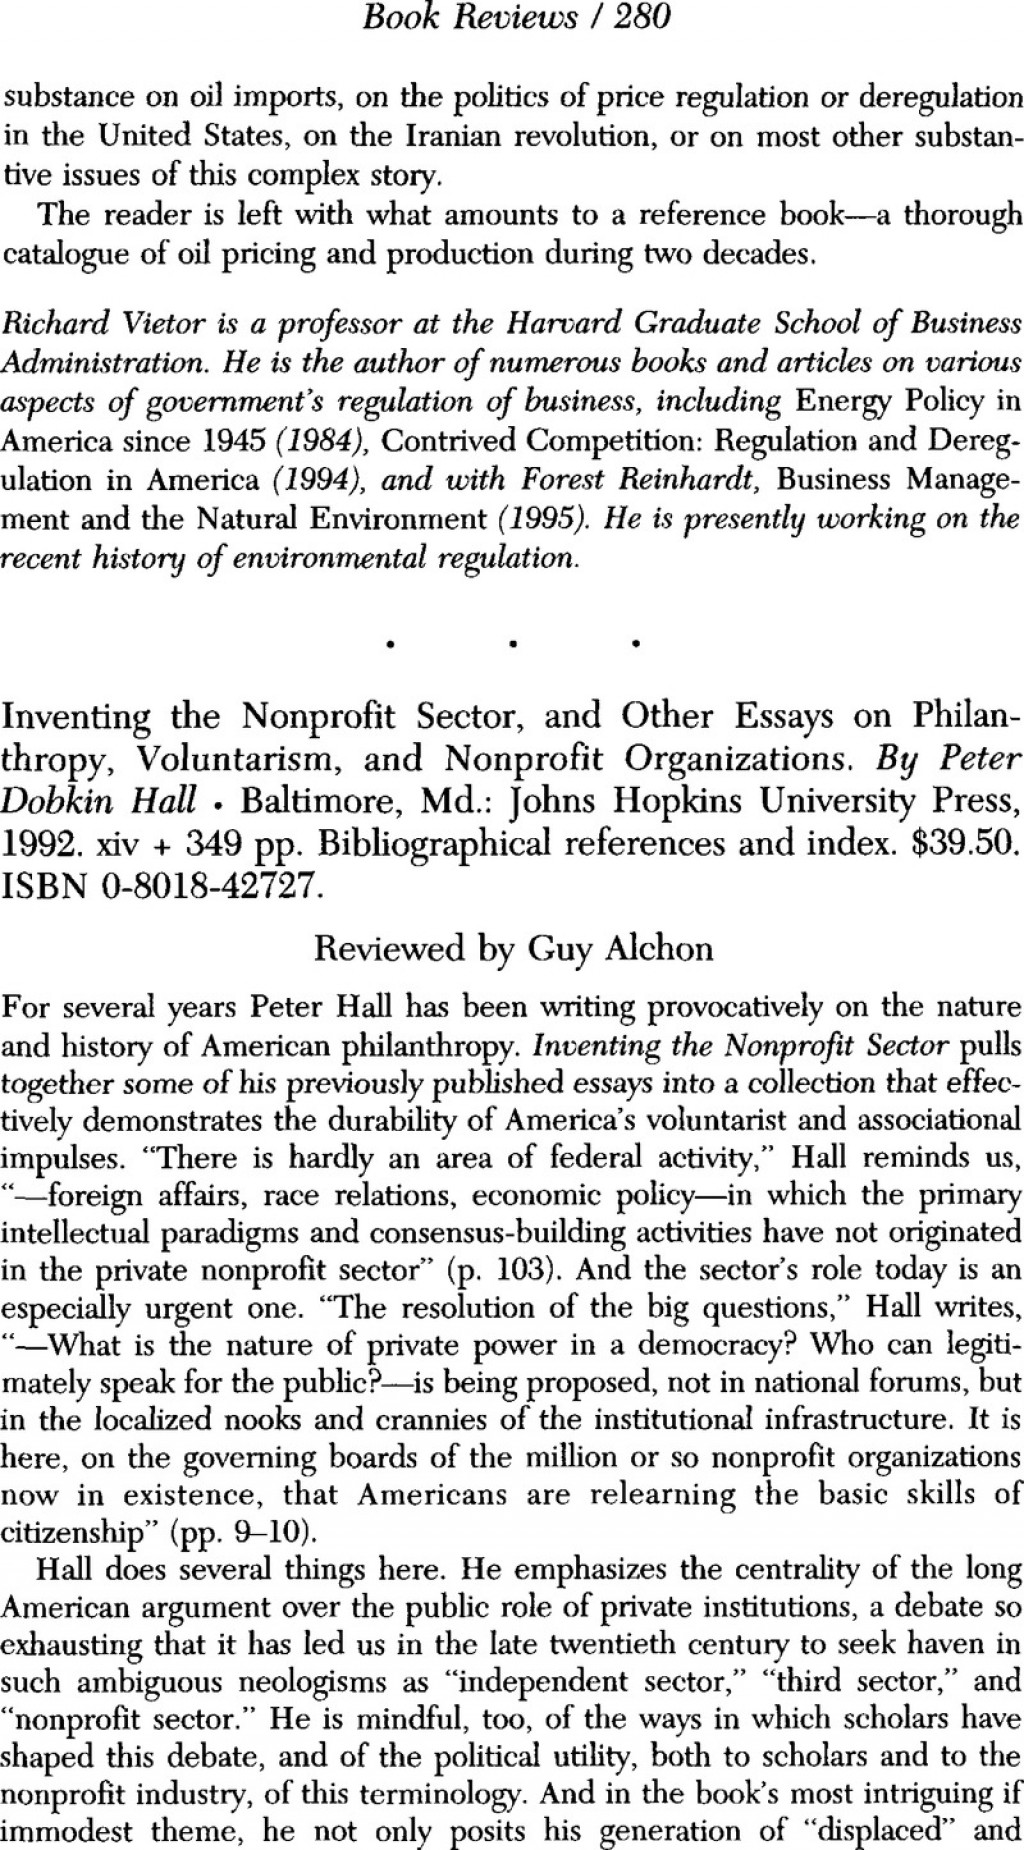 023 Firstpage S0007680500043634a Essay Example John Hopkins Essays That Singular Worked 2020 Johns 2021 2018 Large